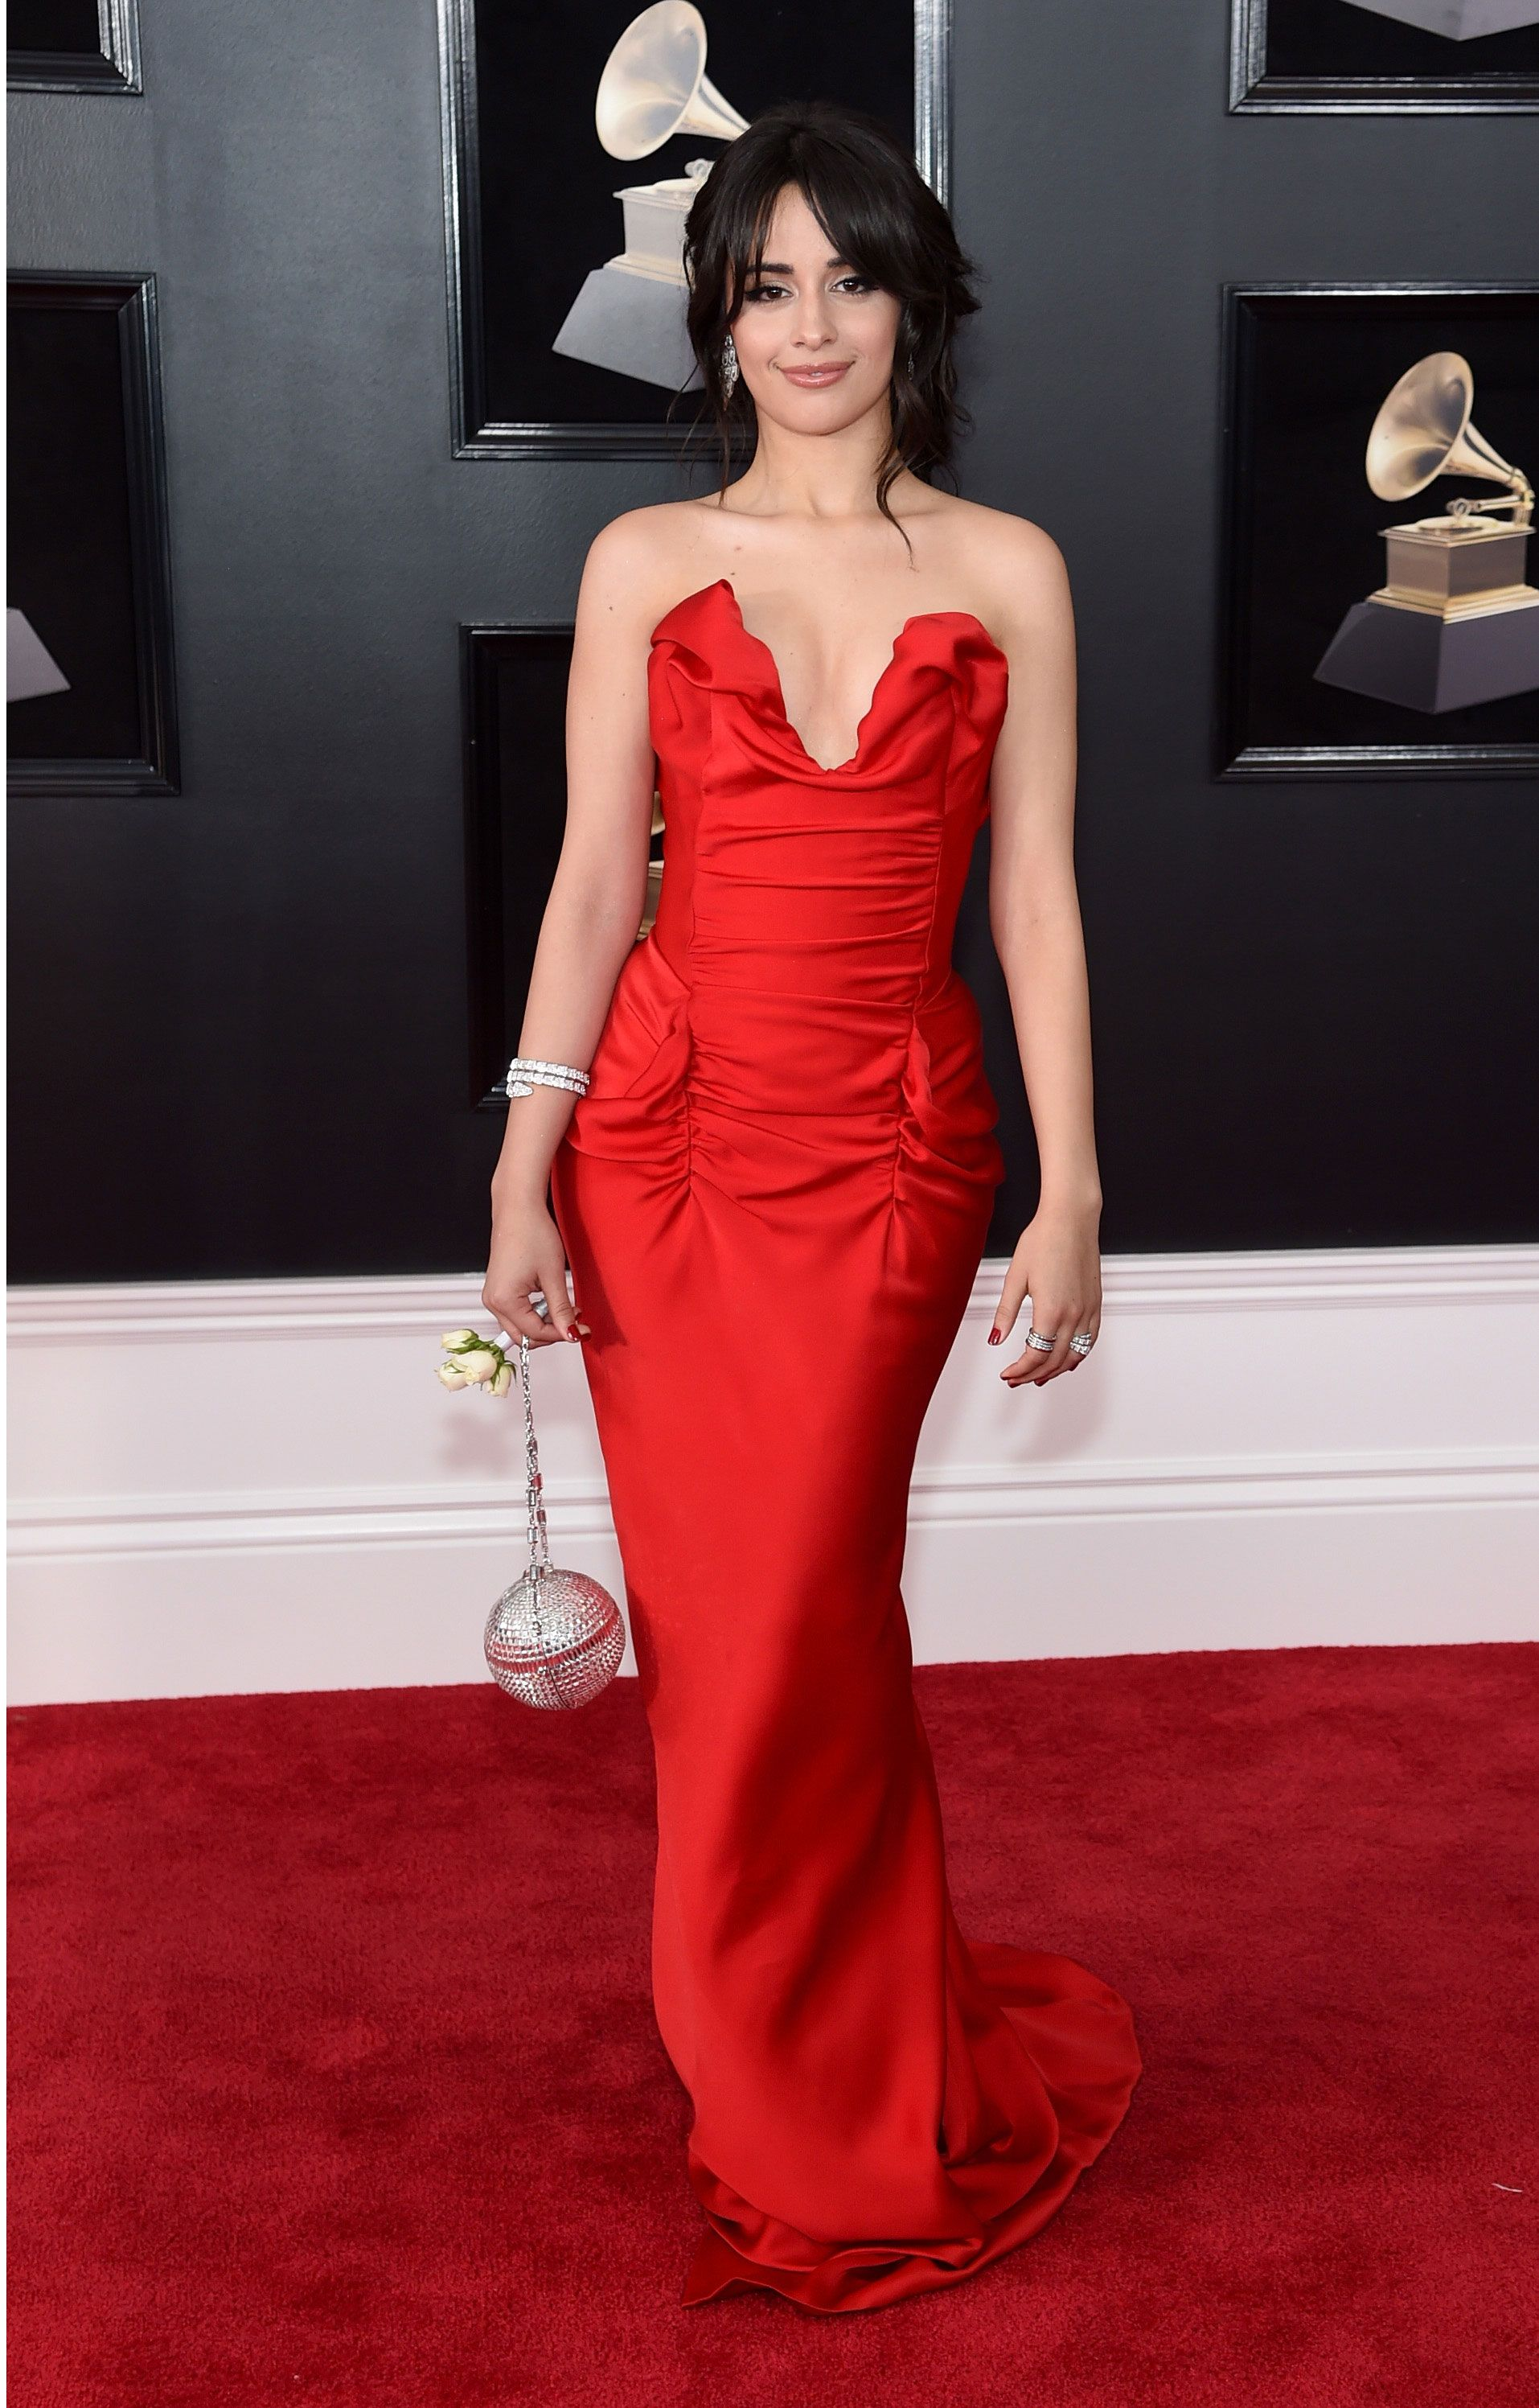 To acquire Awards grammy red carpet rundown picture trends